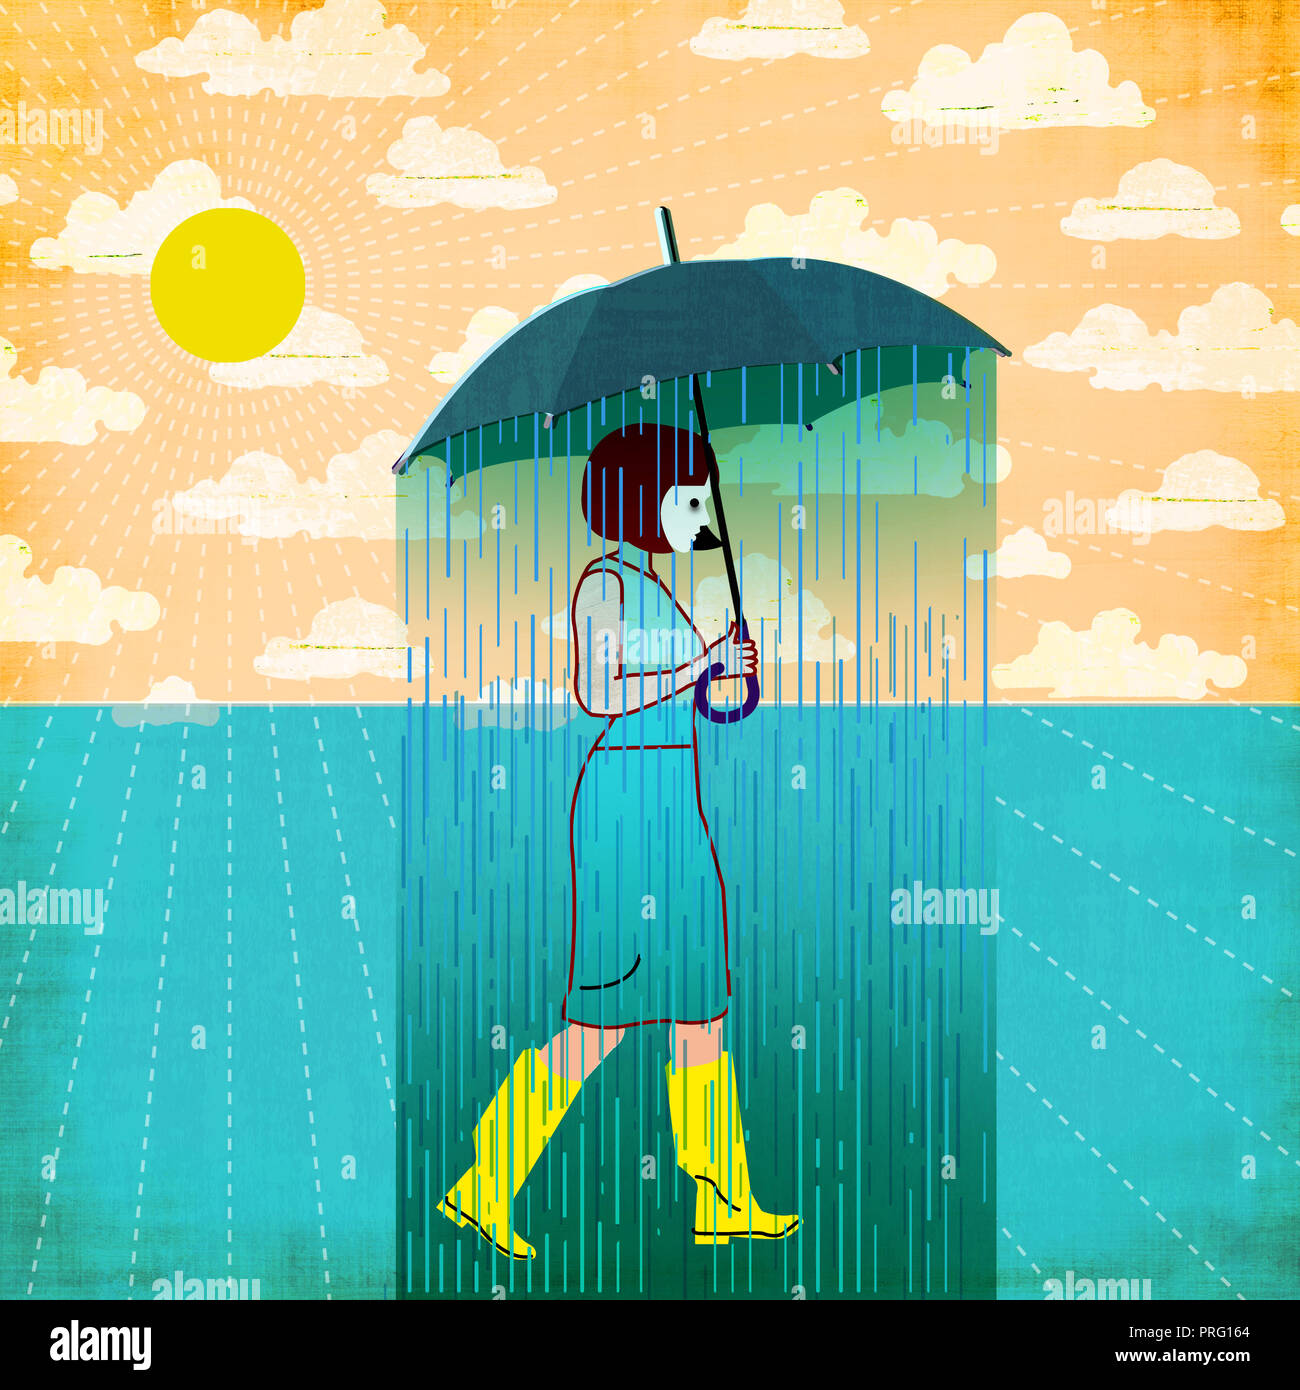 woman with umbrella - Stock Image